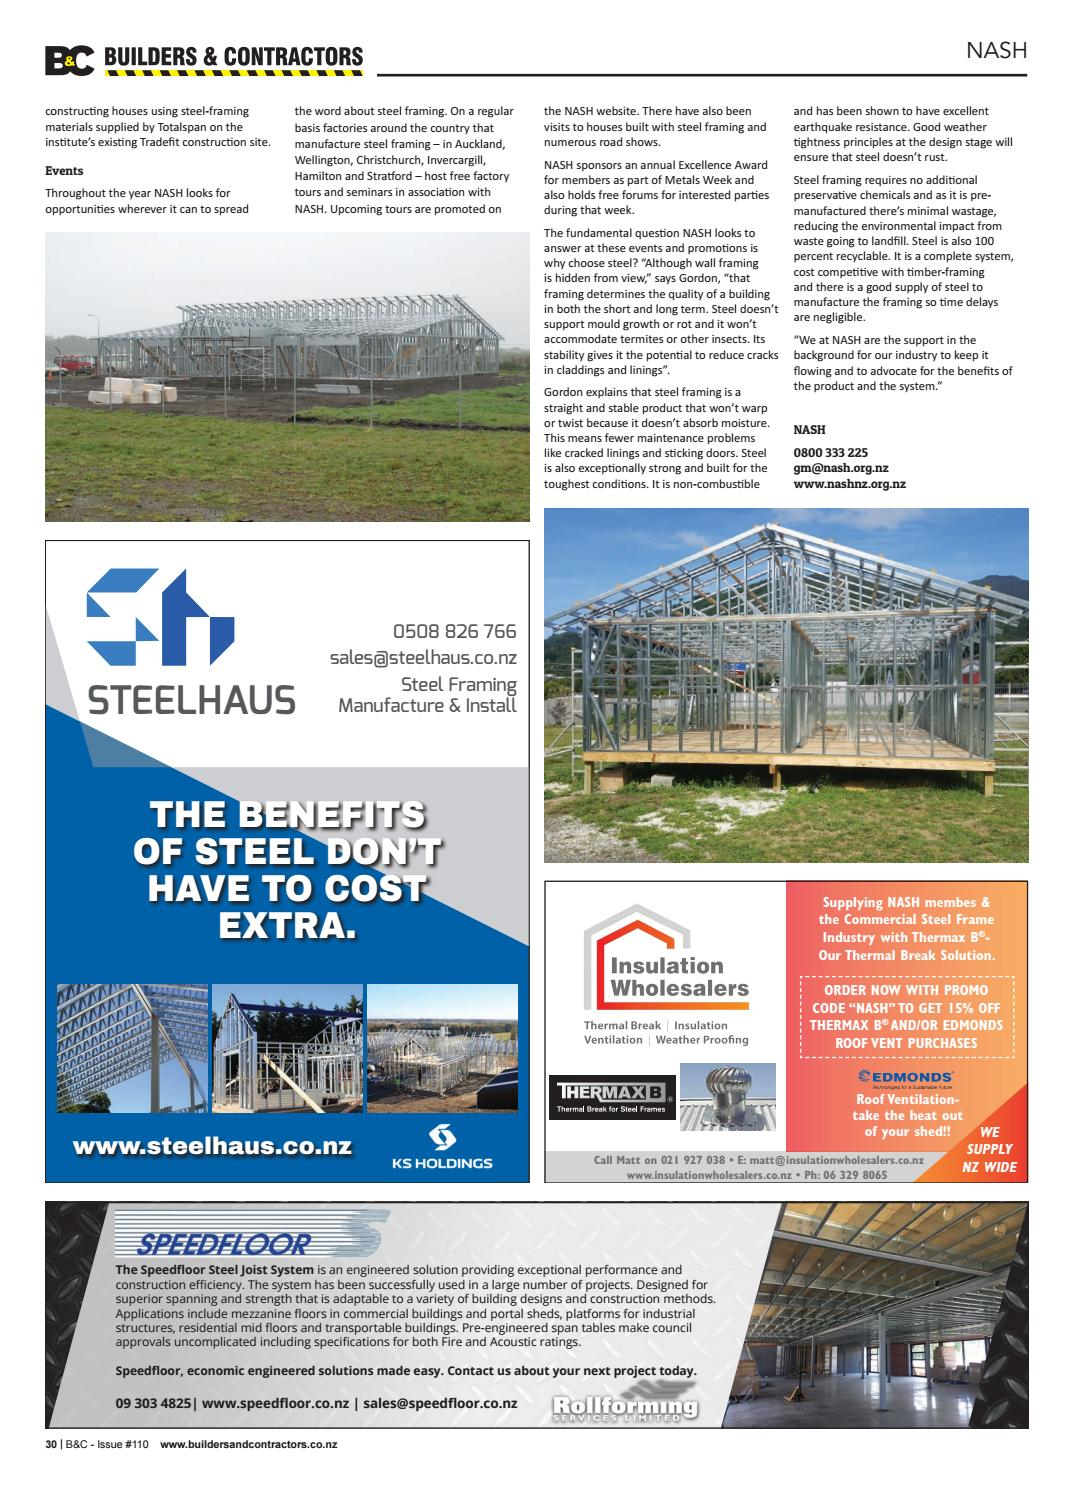 Builders & Contractors Magazine, Issue #110 by Markat - issuu